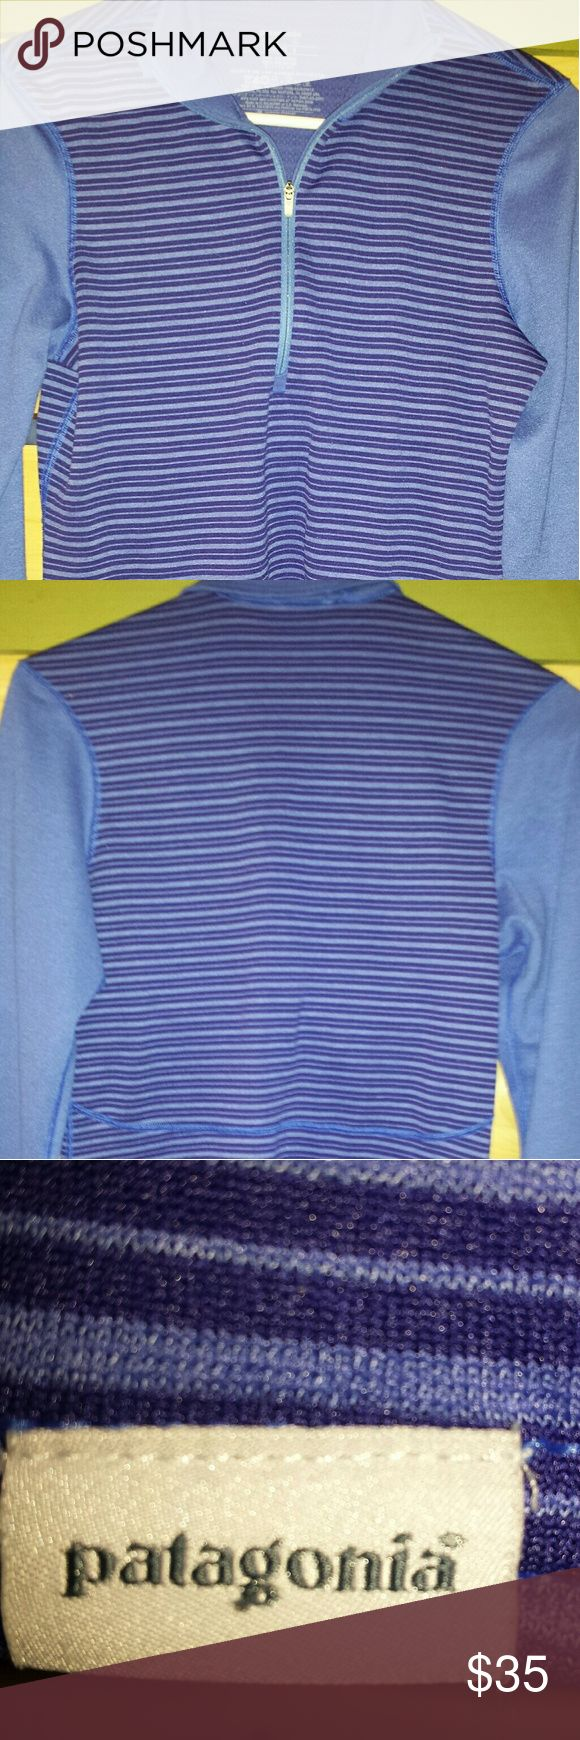 Patagonia Woman's Pullover Excellent Condition Size Small Patagonia Tops